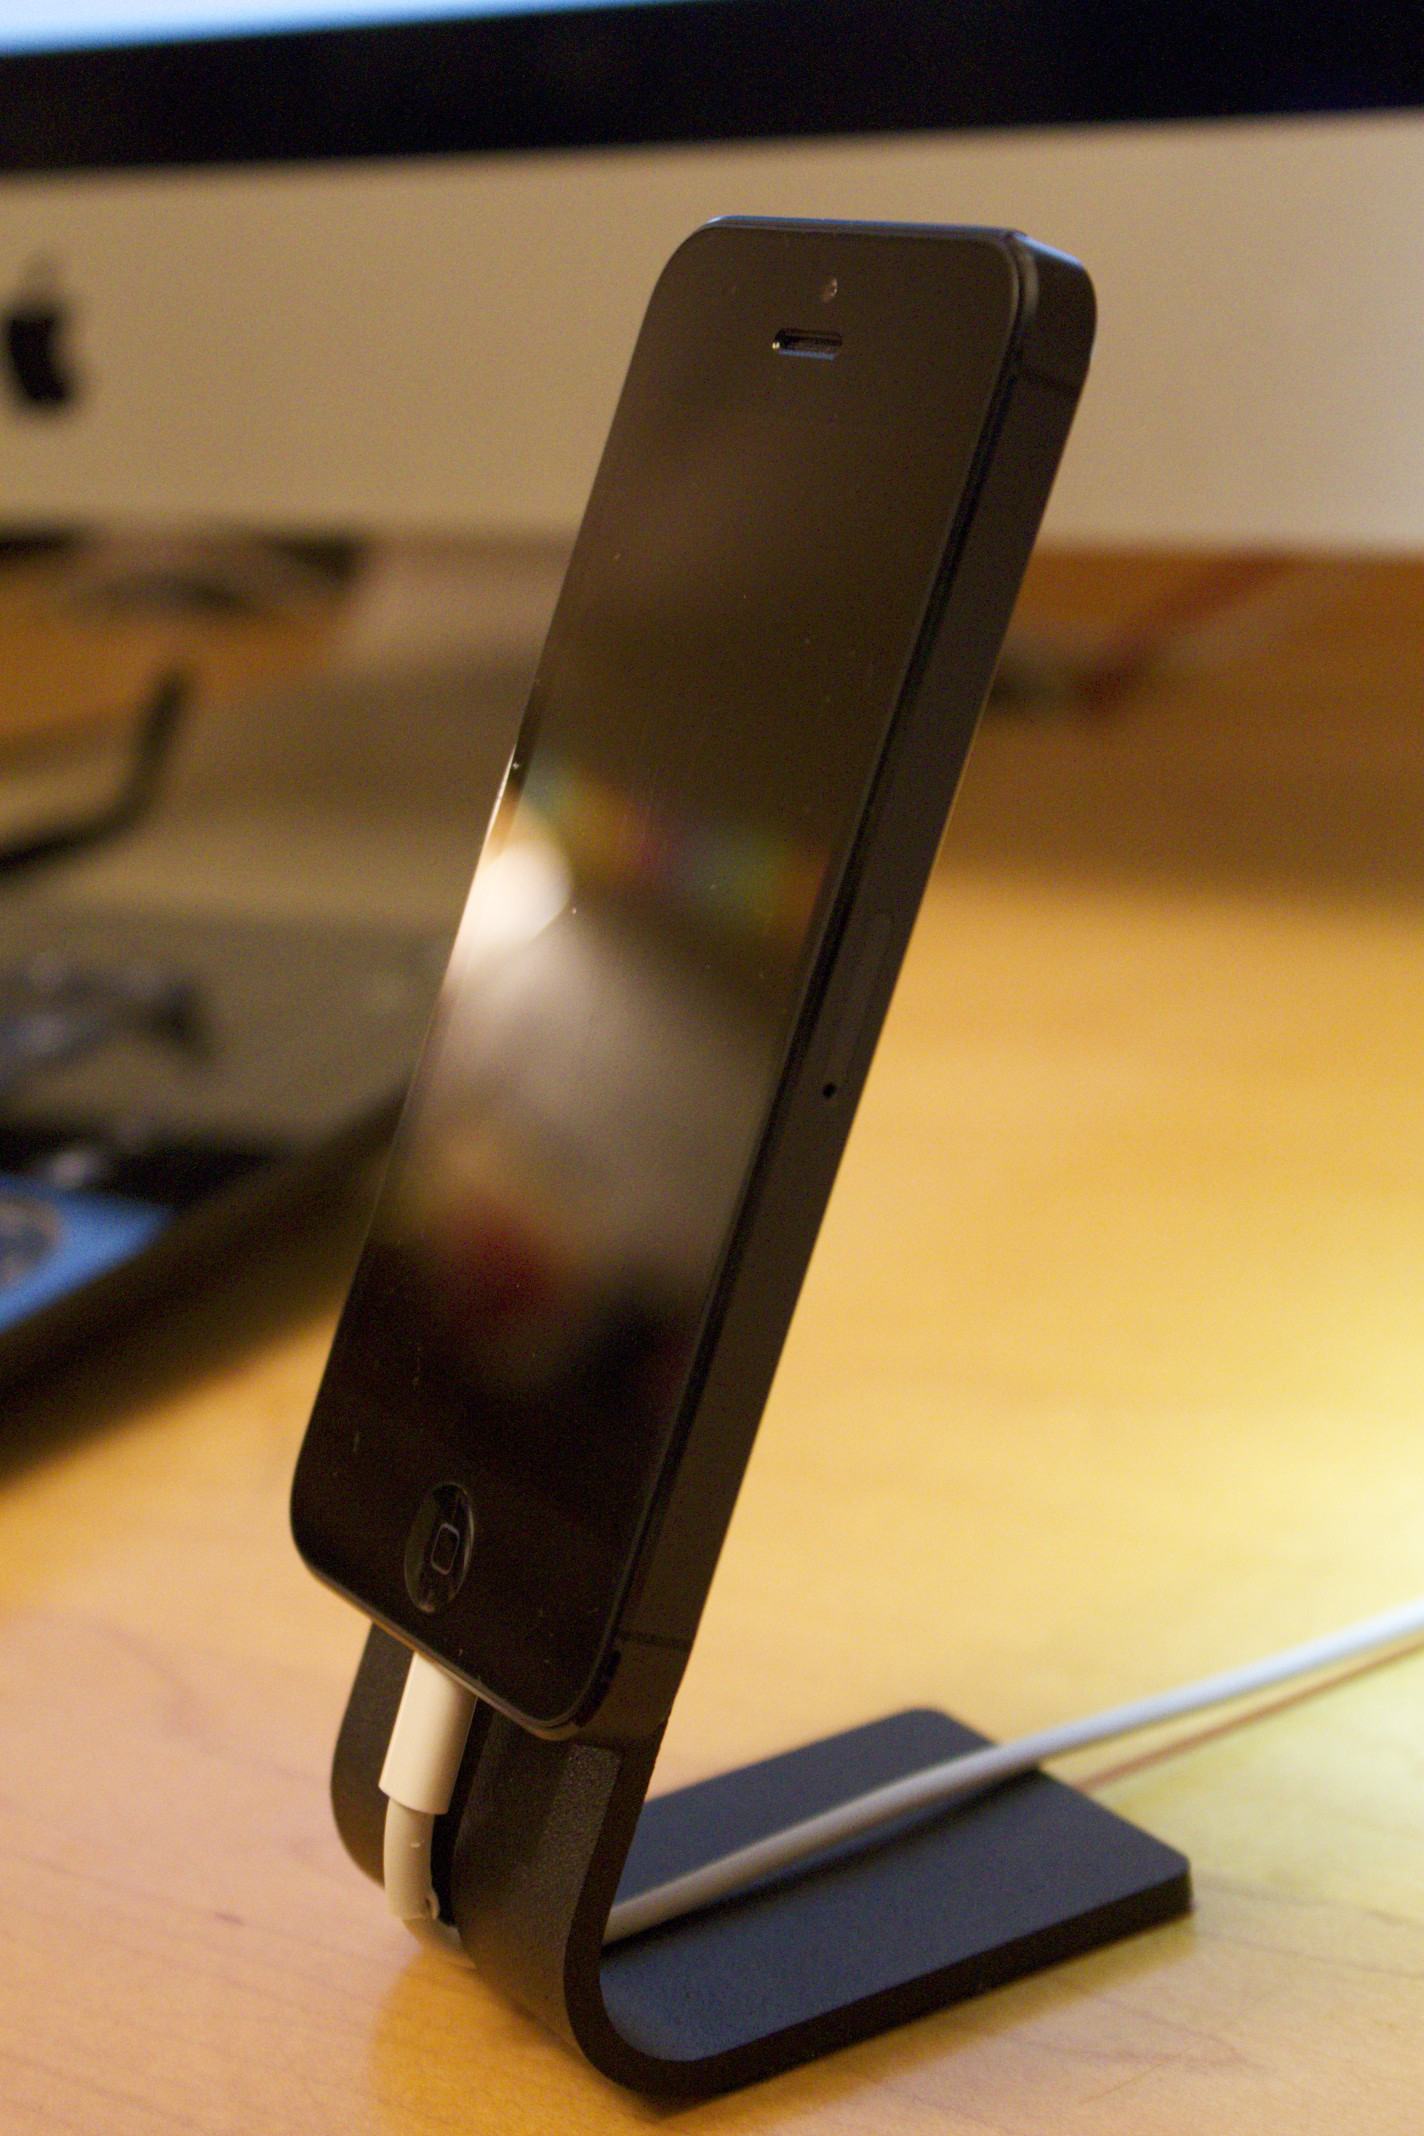 The SETA Smartphone Stand in Action